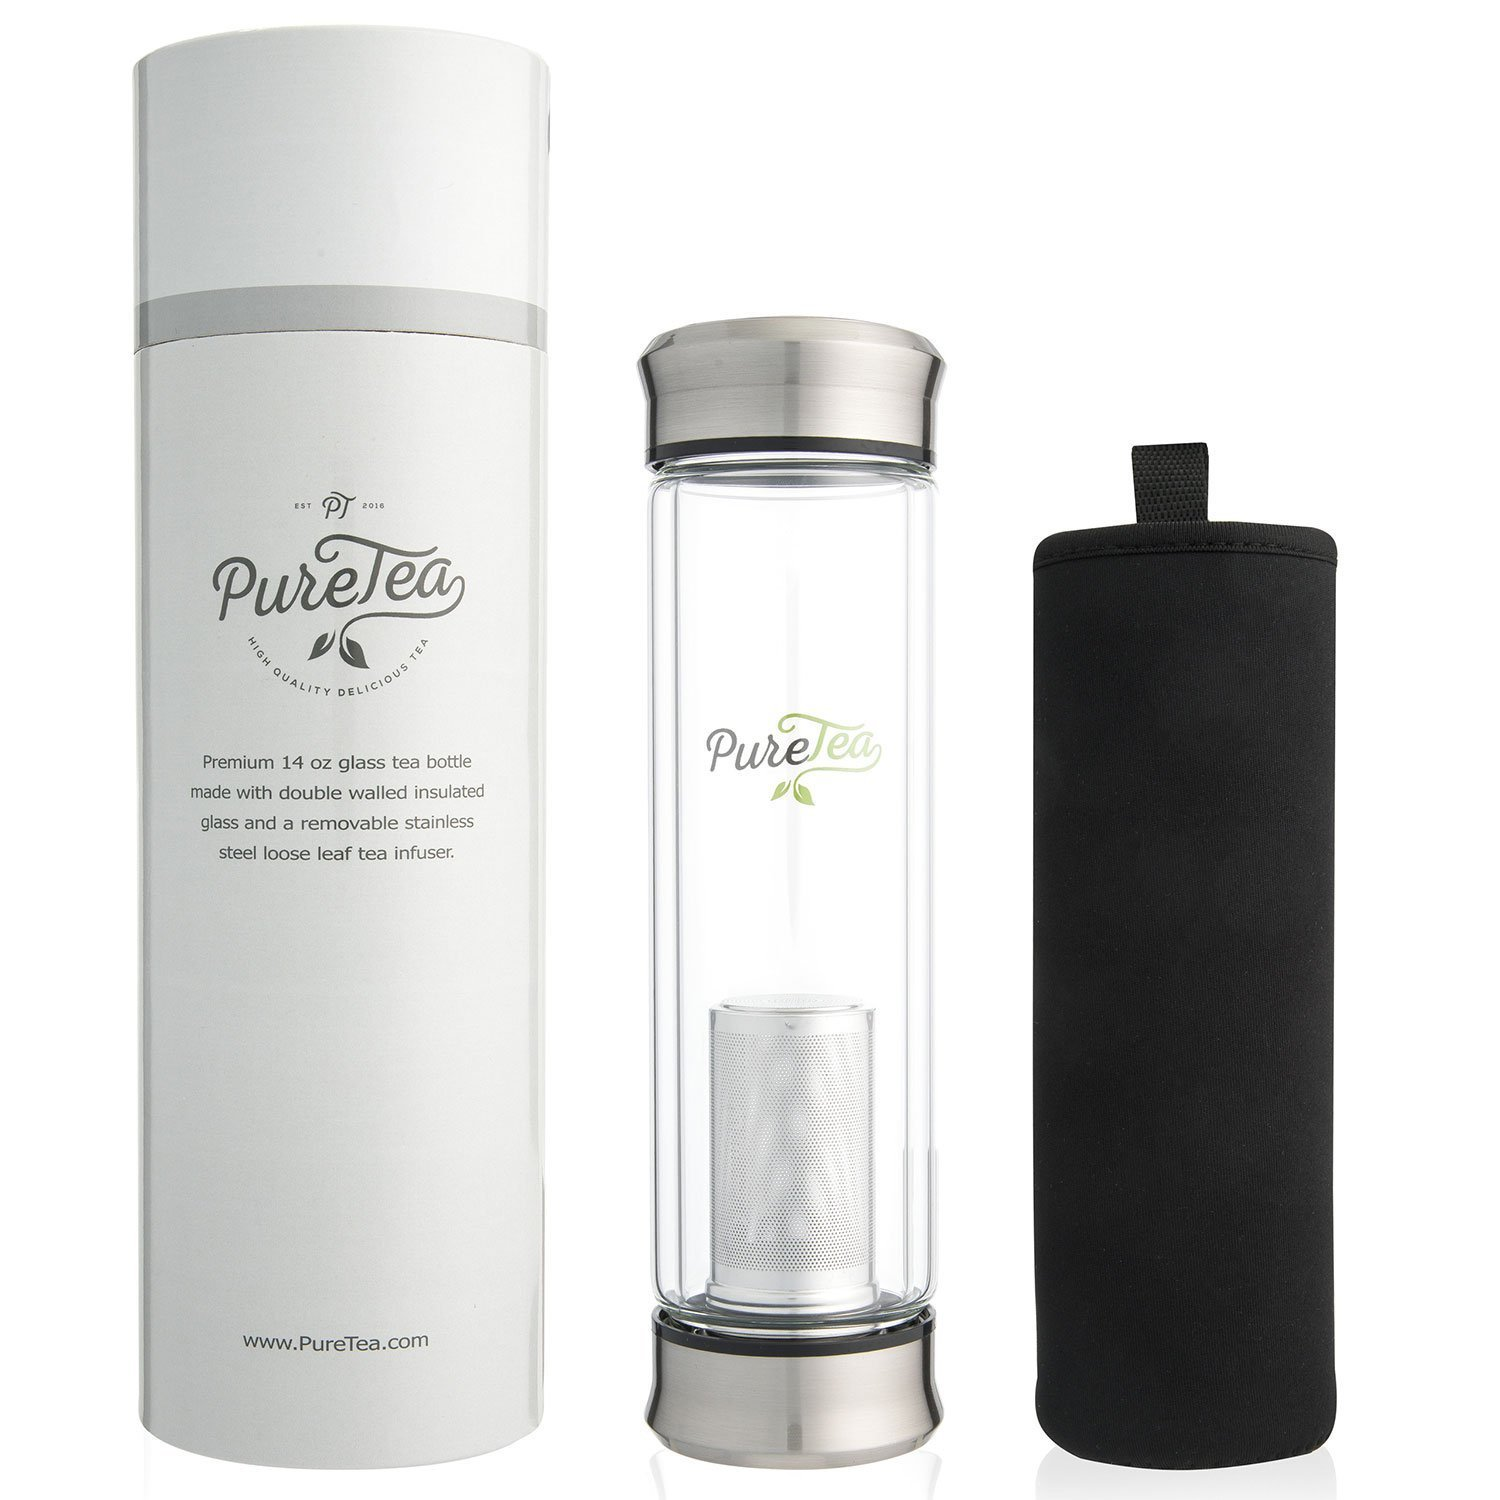 PureTea Tea Infuser Bottle w/Sleeve - Tea Infusers for Loose Tea - NEW & Improved Loose Leaf Tea Cup + Stainless Steel Strainer Filter - Perfect Glass Travel Water Mug - 14oz Infuser w/Sleeve